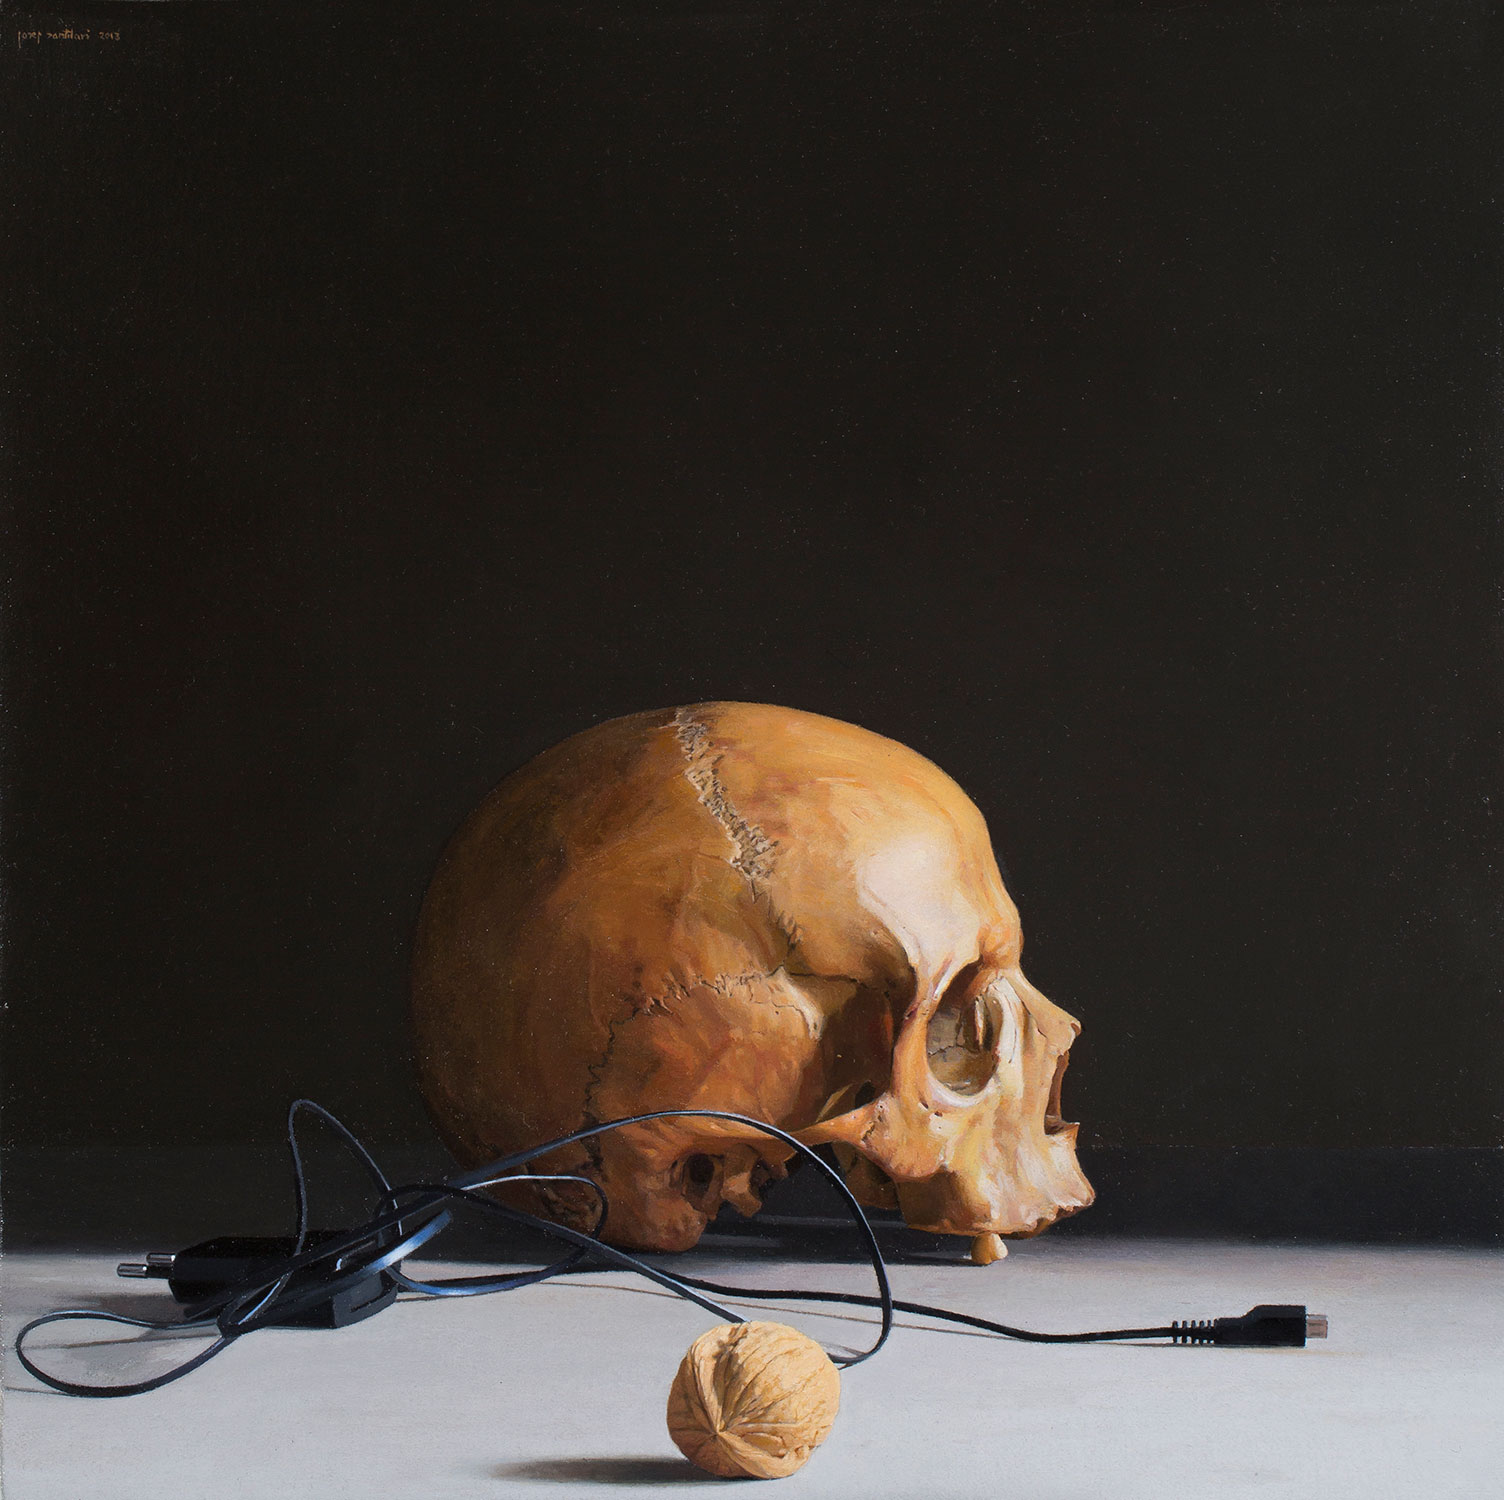 Vanitas. The origin, Josep Santilari